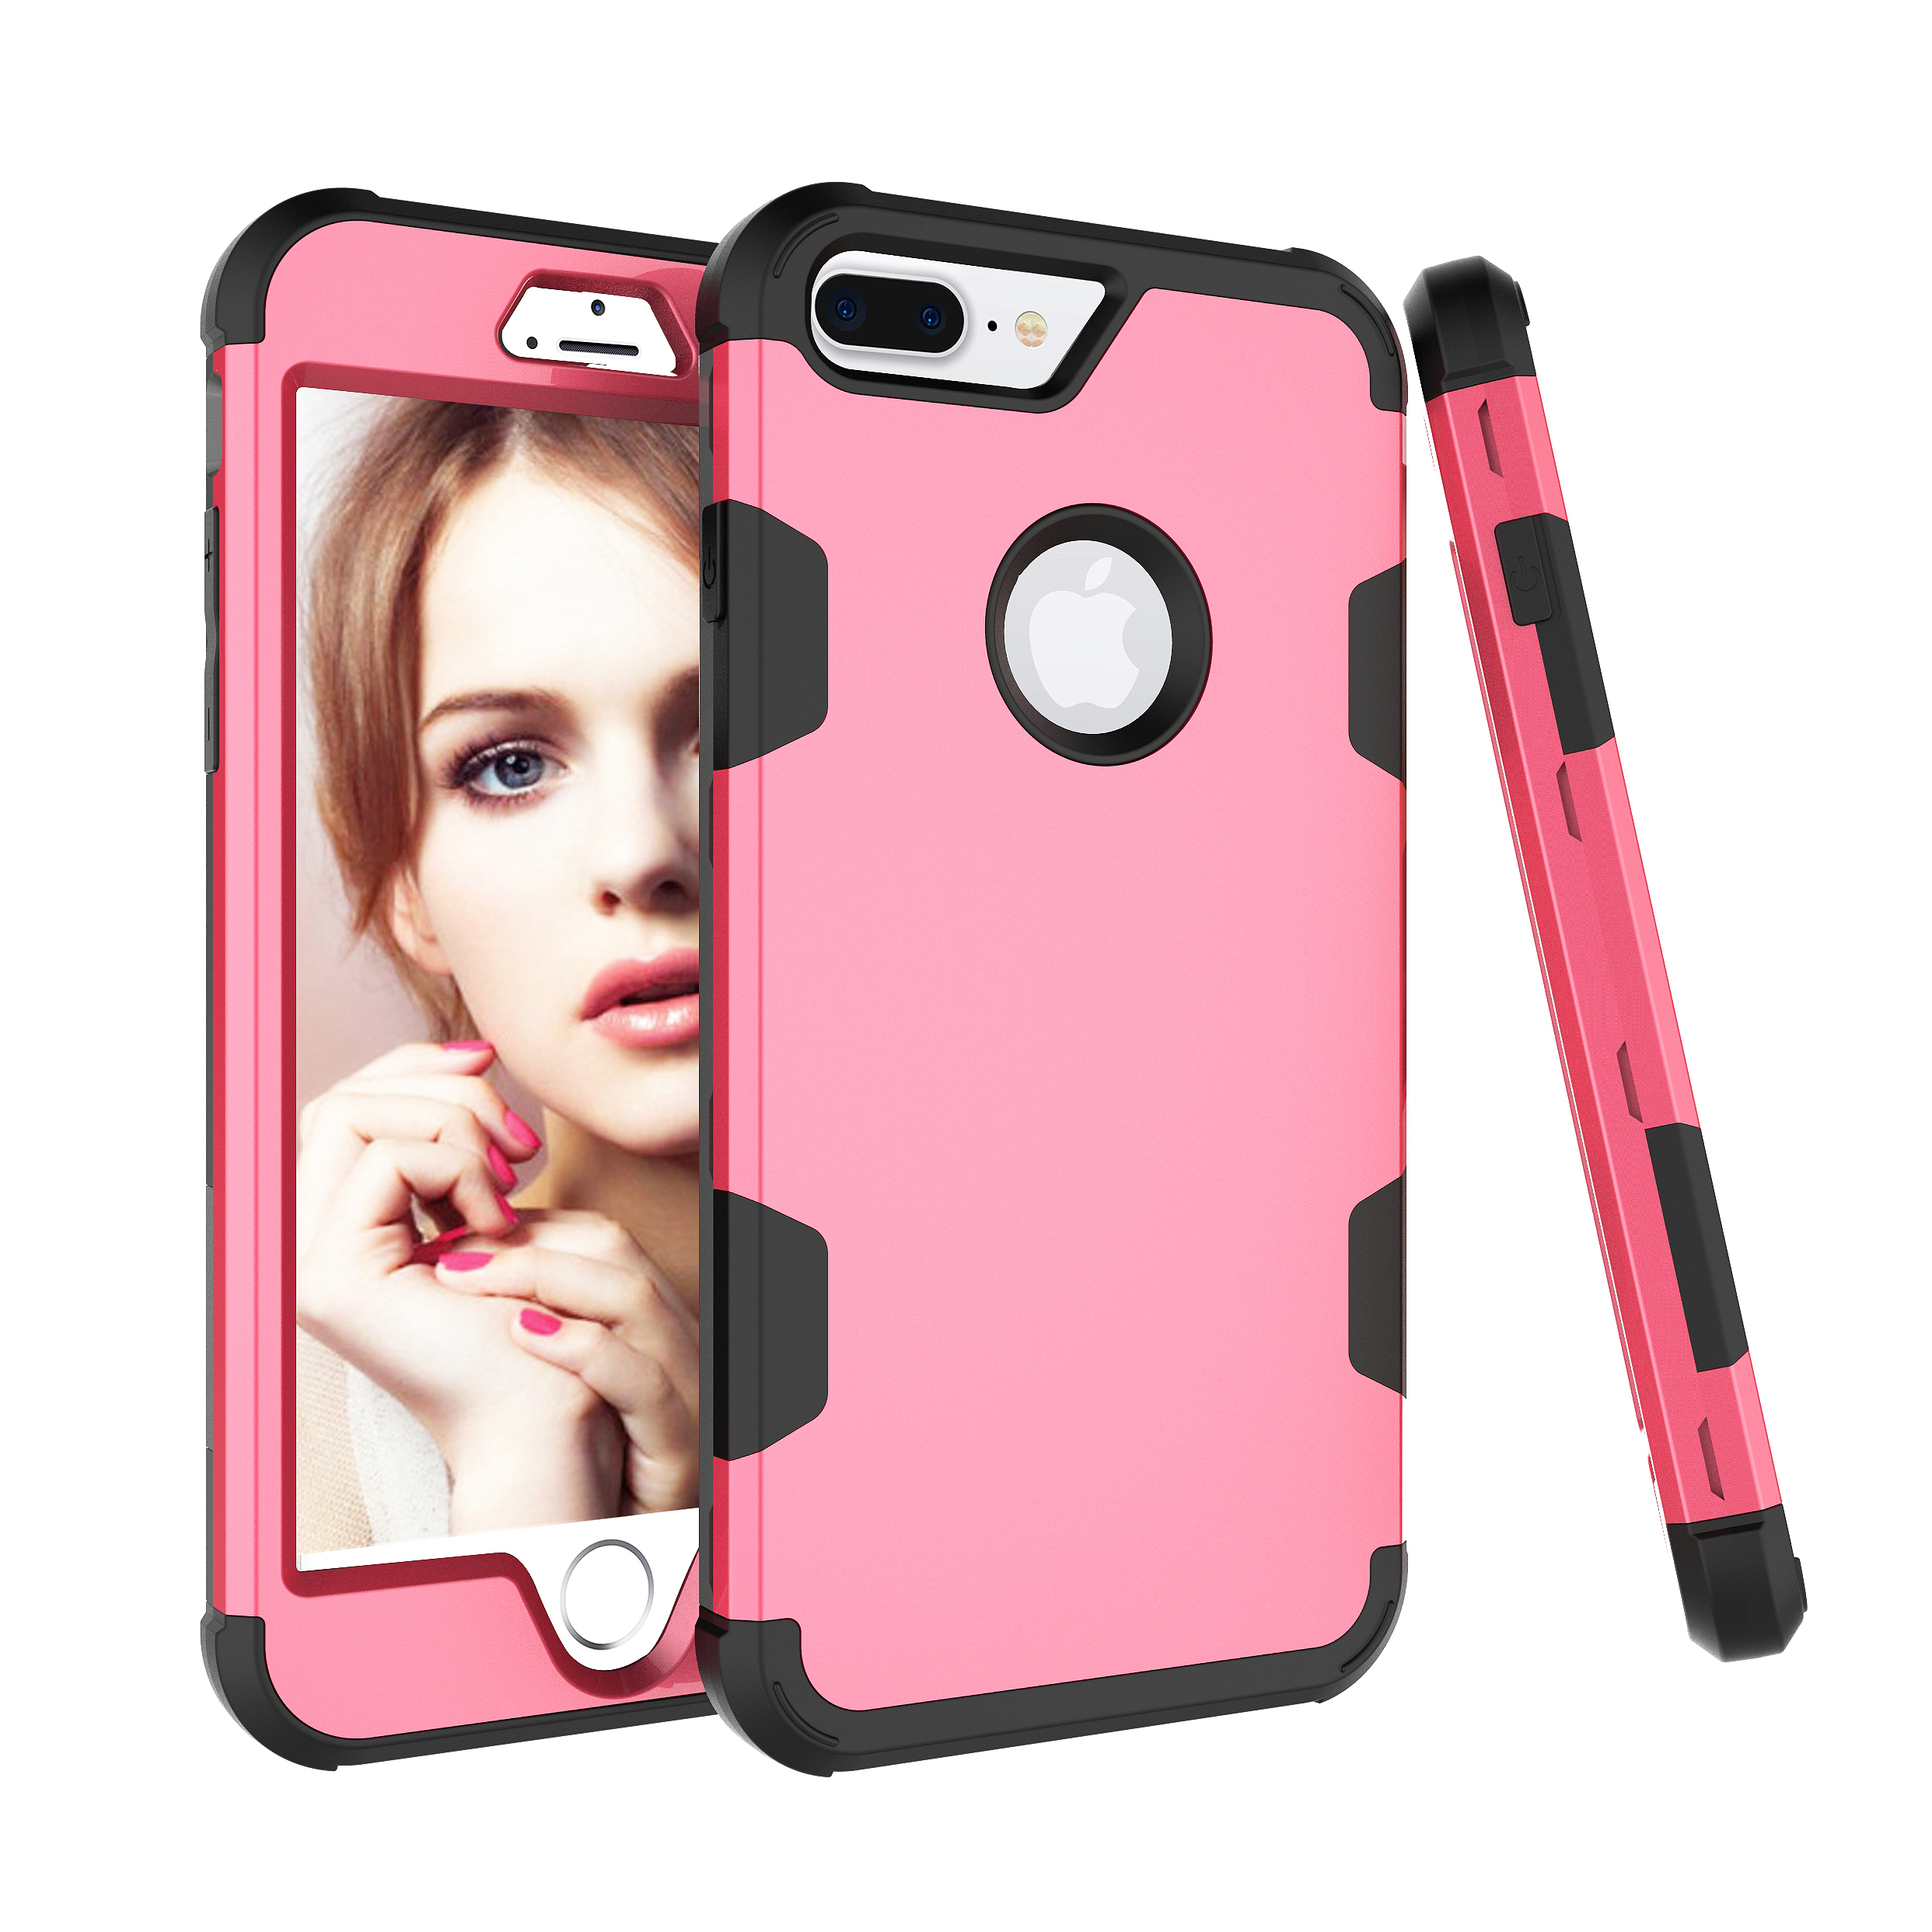 For iPhone 7 plus PC+ Silicone 2 in 1 Hit Color Tri-proof Shockproof Dustproof Anti-fall Protective Cover Back Case Rose red + black